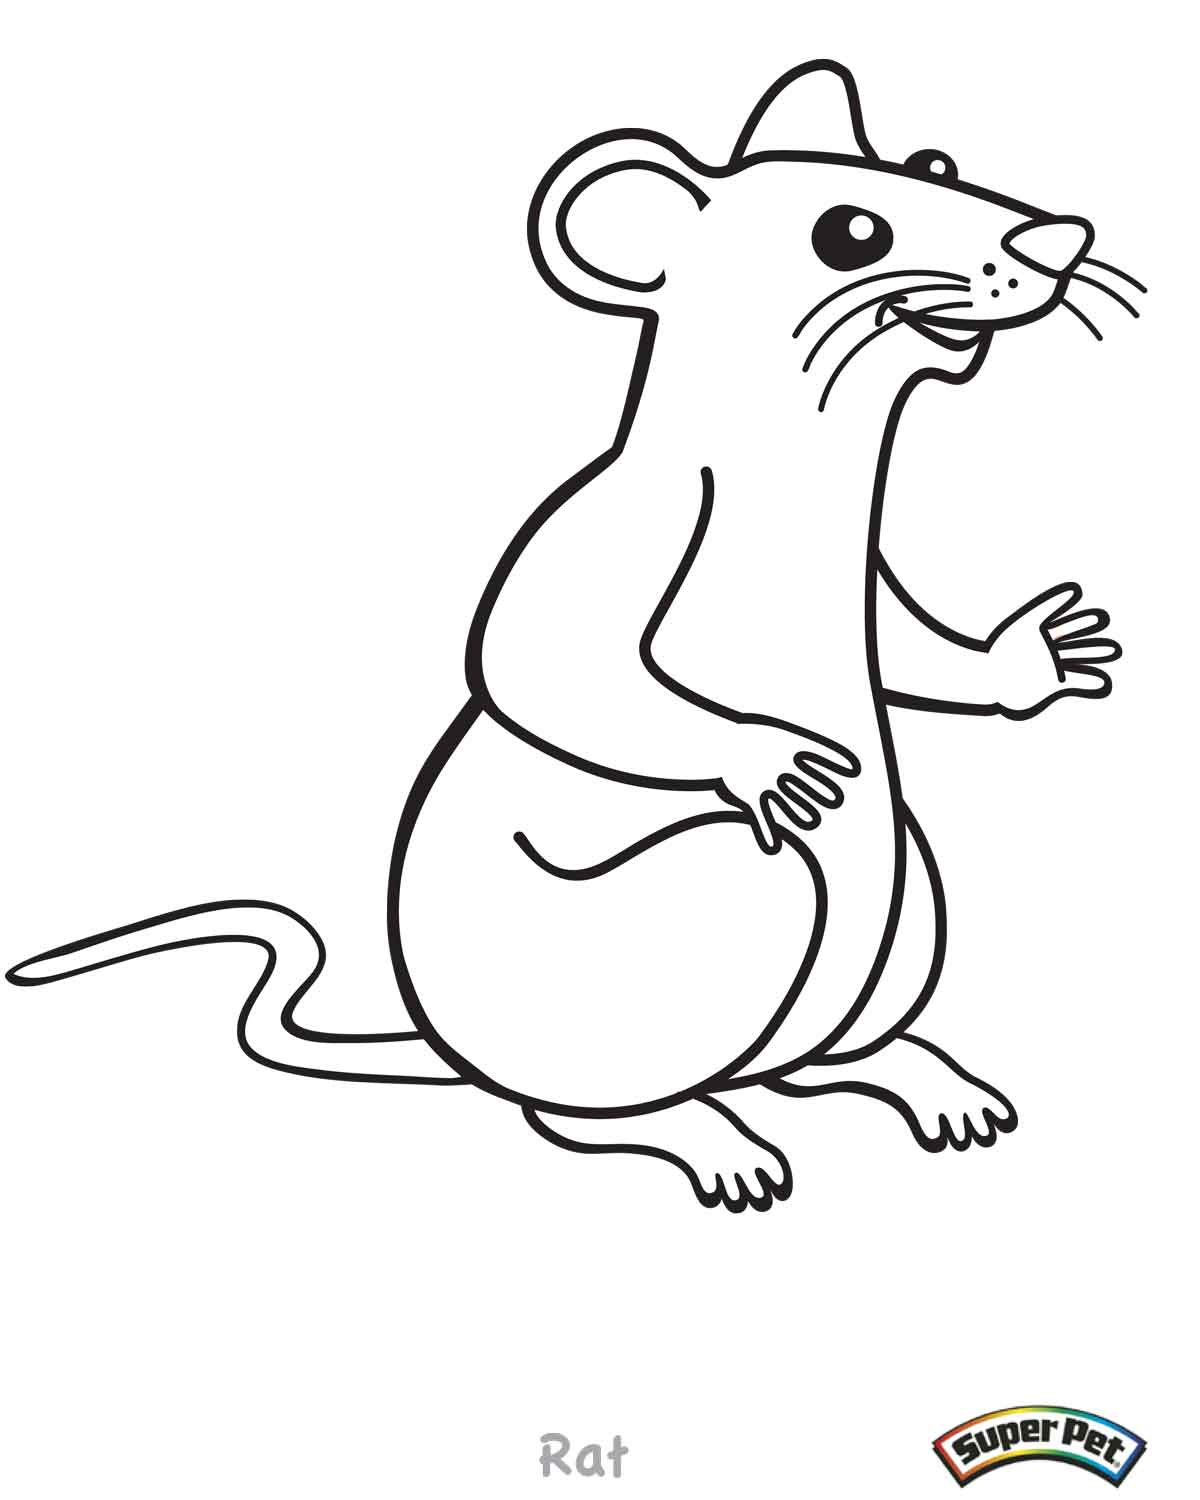 Cartoon Critters Coloring Pages Directory Coloring Coloring Pages